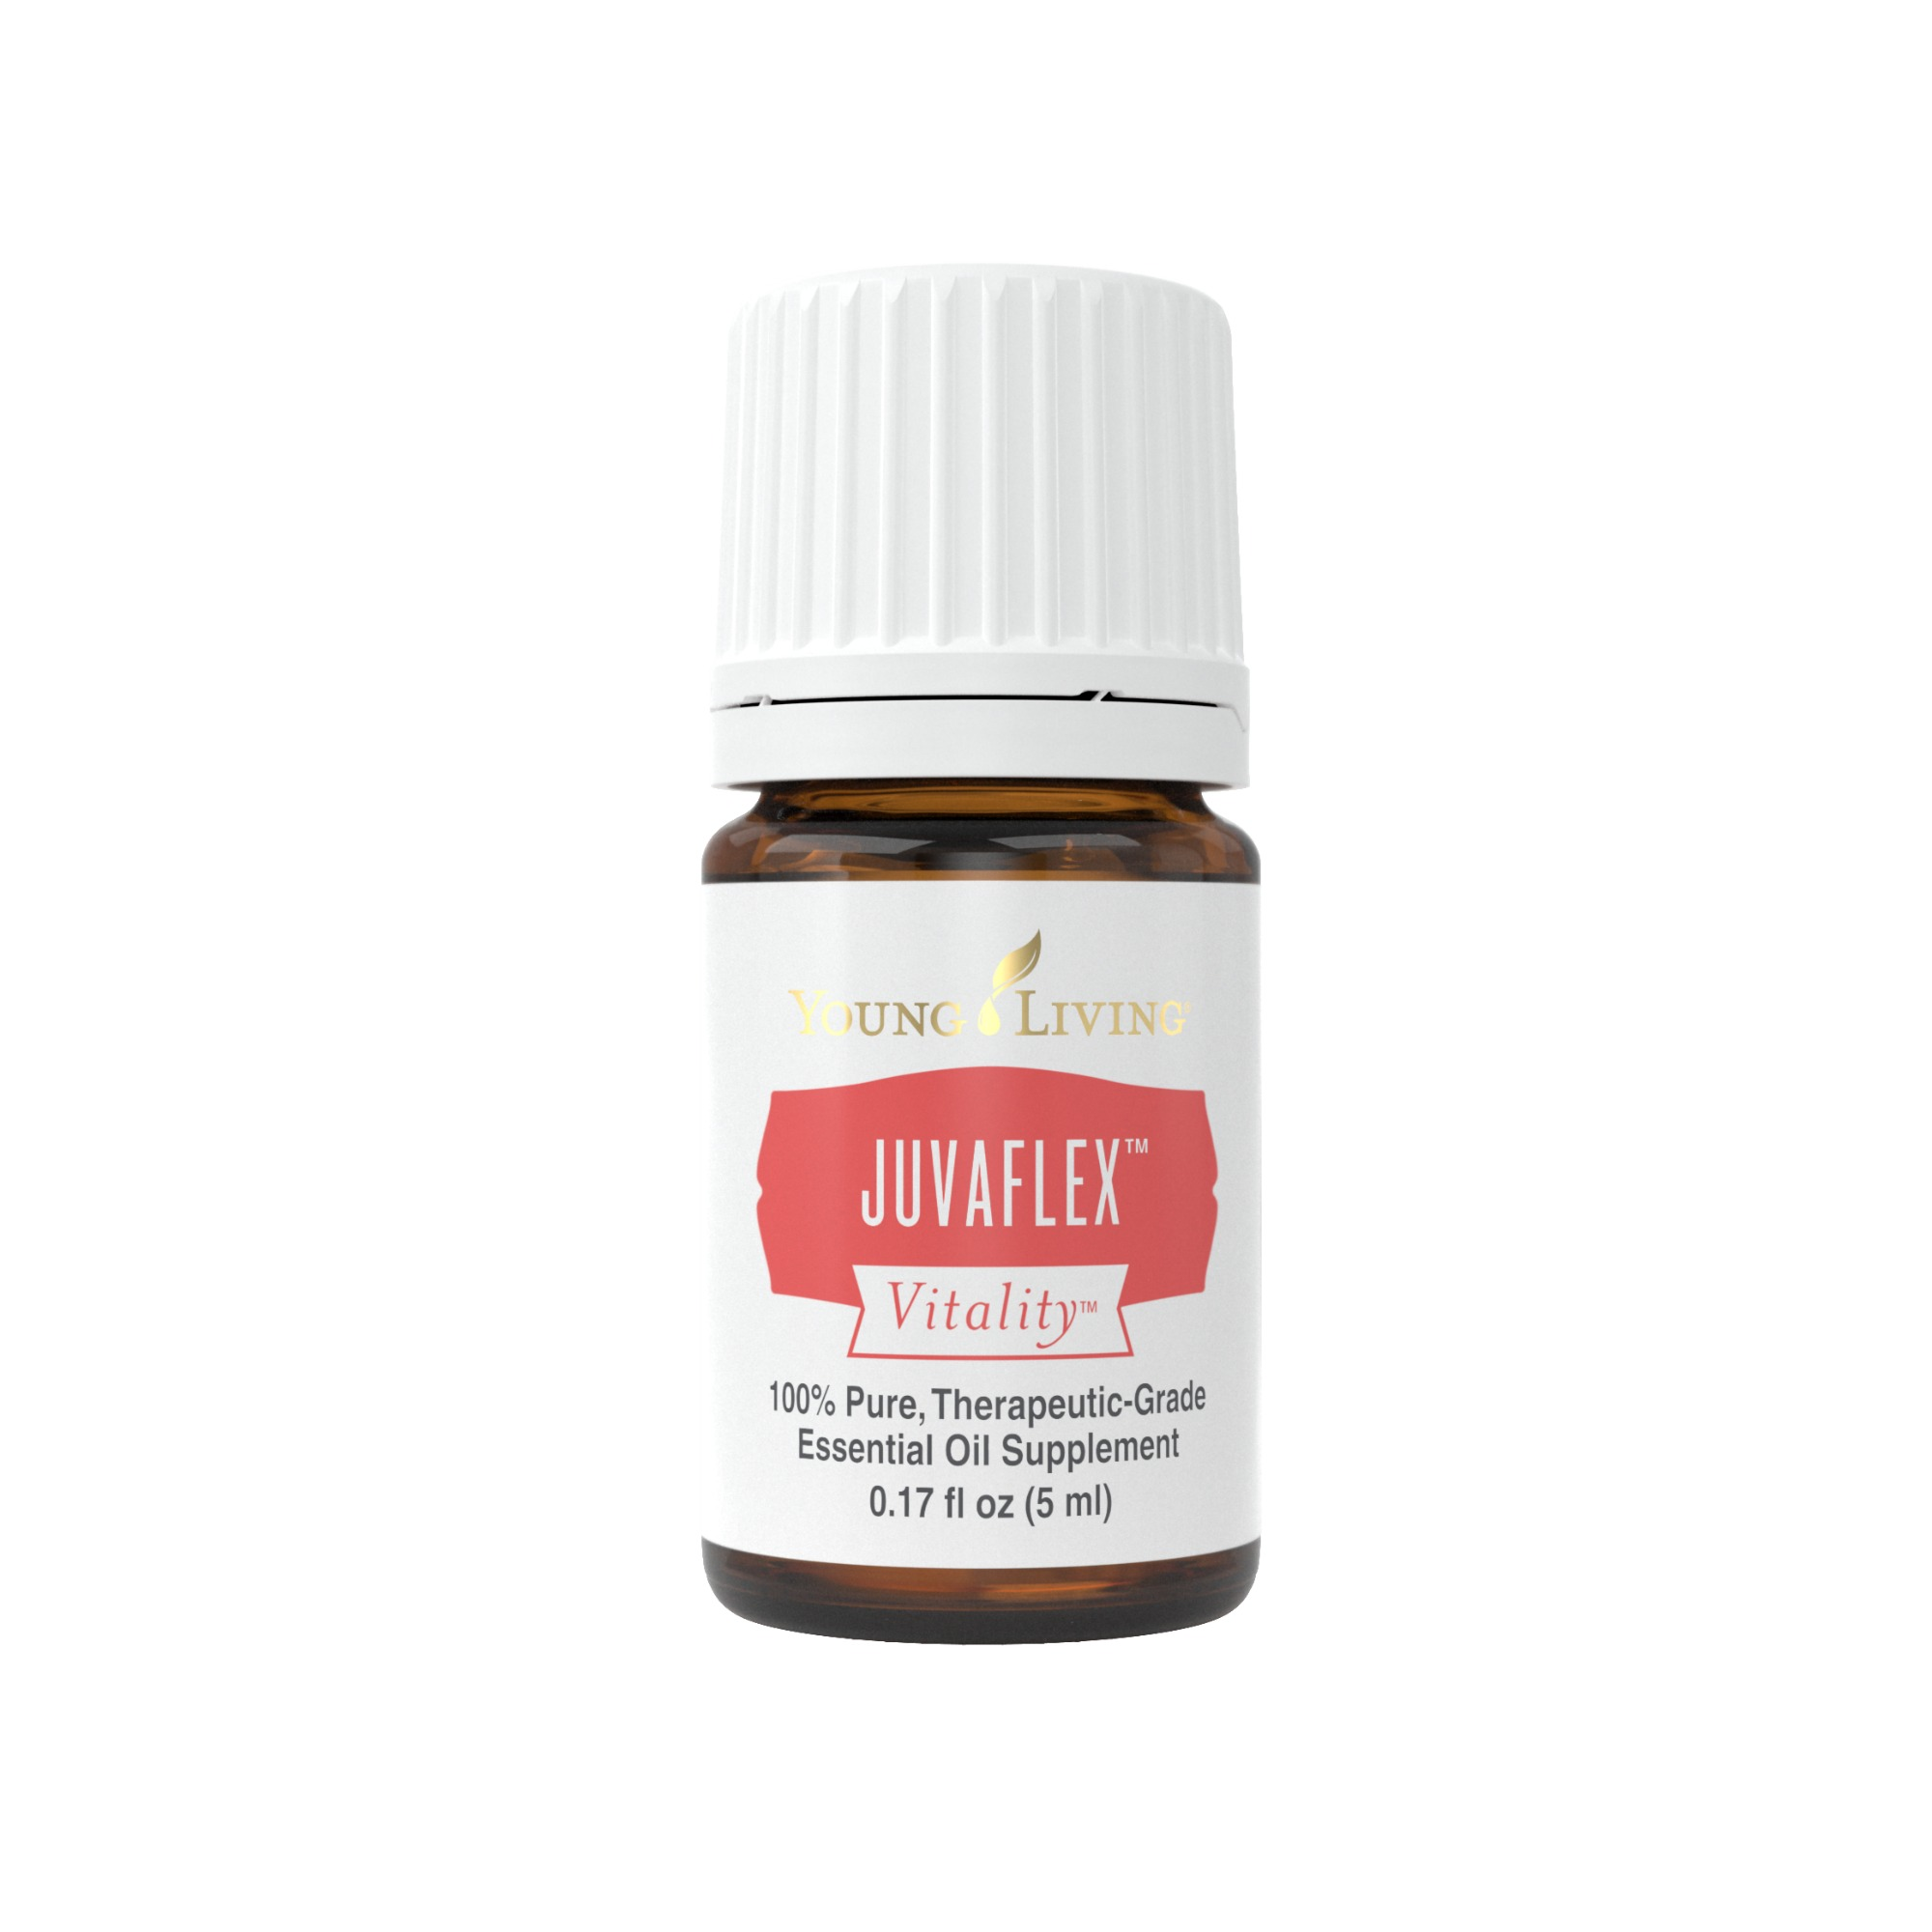 JUVAFLEX VITALITY ESSENTIAL OIL    JuvaFlex® Vitality™ combines Fennel, Geranium, Rosemary, Roman Chamomile, Blue Tansy, and Helichrysum essential oils. A beneficial complement to other supportive dietary blends, JuvaFlex Vitality can help support a healthy lifestyle regimen when taken internally, especially for the liver. Many like to add a drop in their daily dose of Ningxia Red, JuvaPower scoop, or glass of water.   Click here   to learn more about this product.